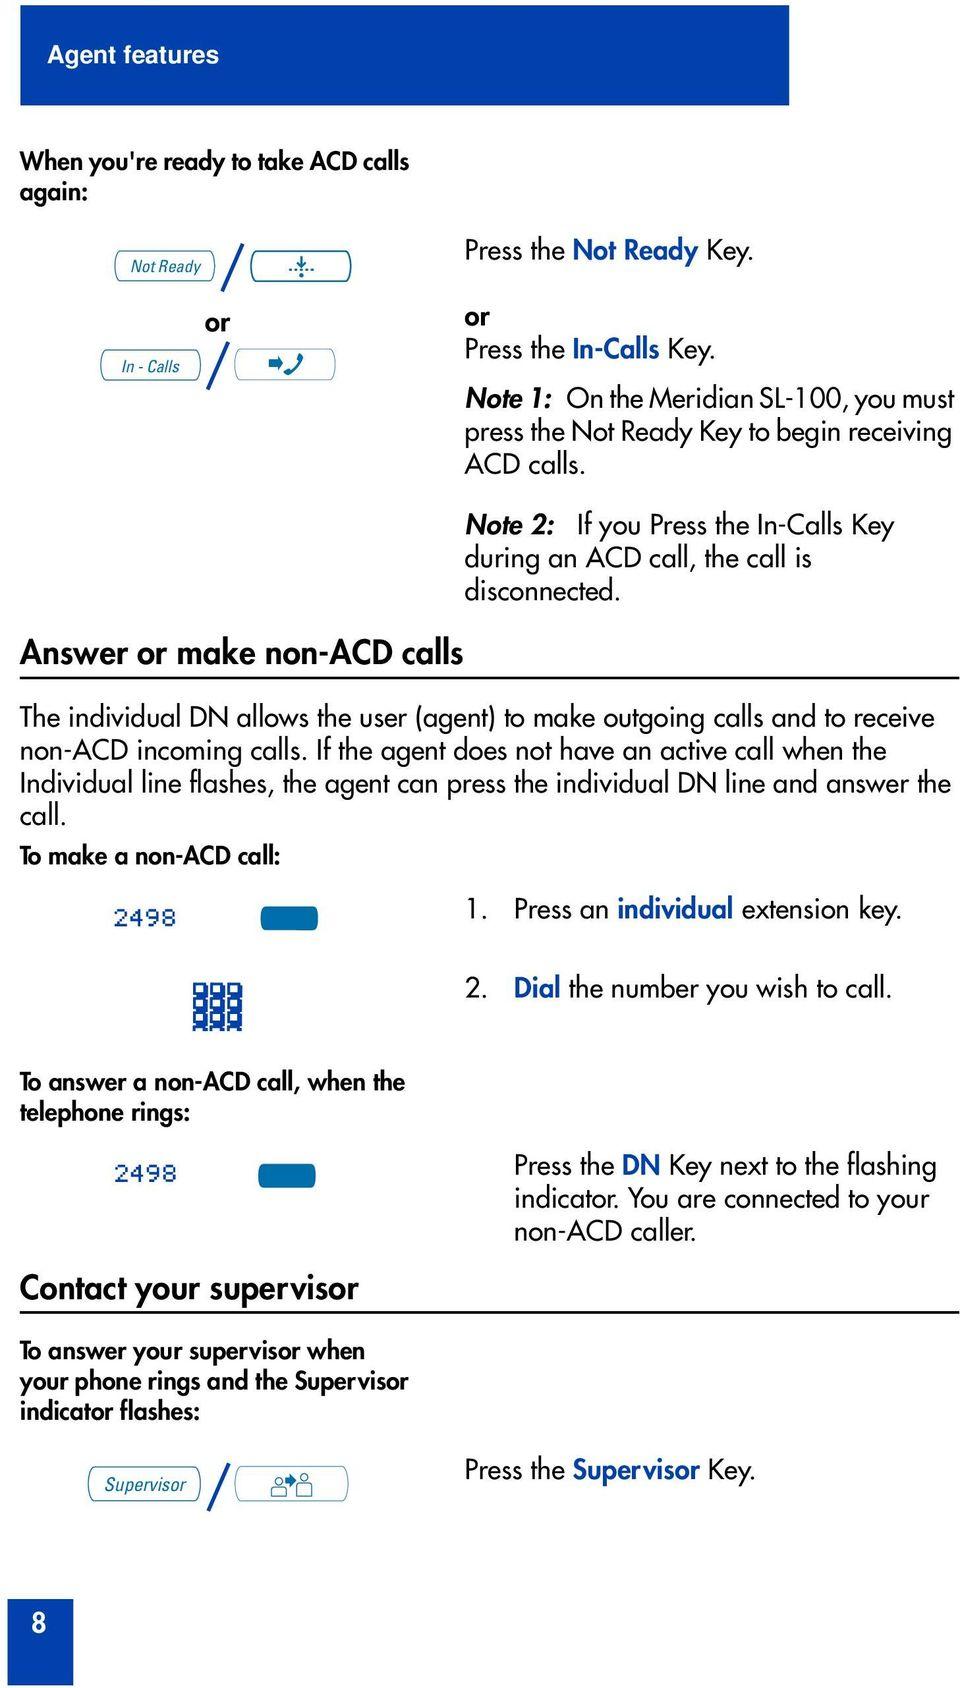 Answer or make non-acd calls Note 2: If you Press the In-Calls Key during an ACD call, the call is disconnected.